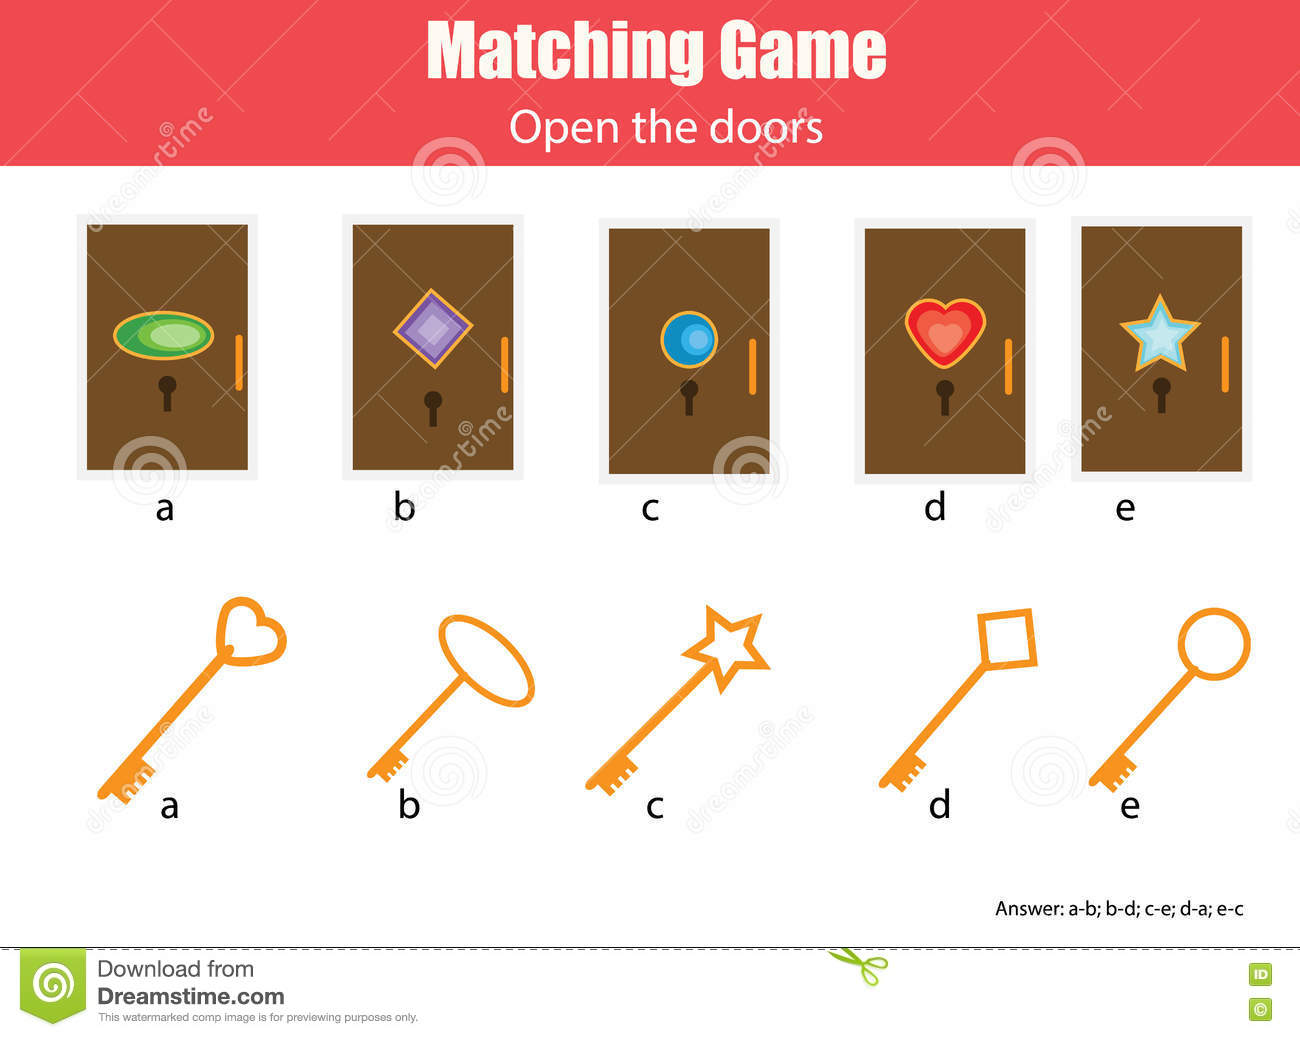 Matching Children Educational Game Match Keys And Doors